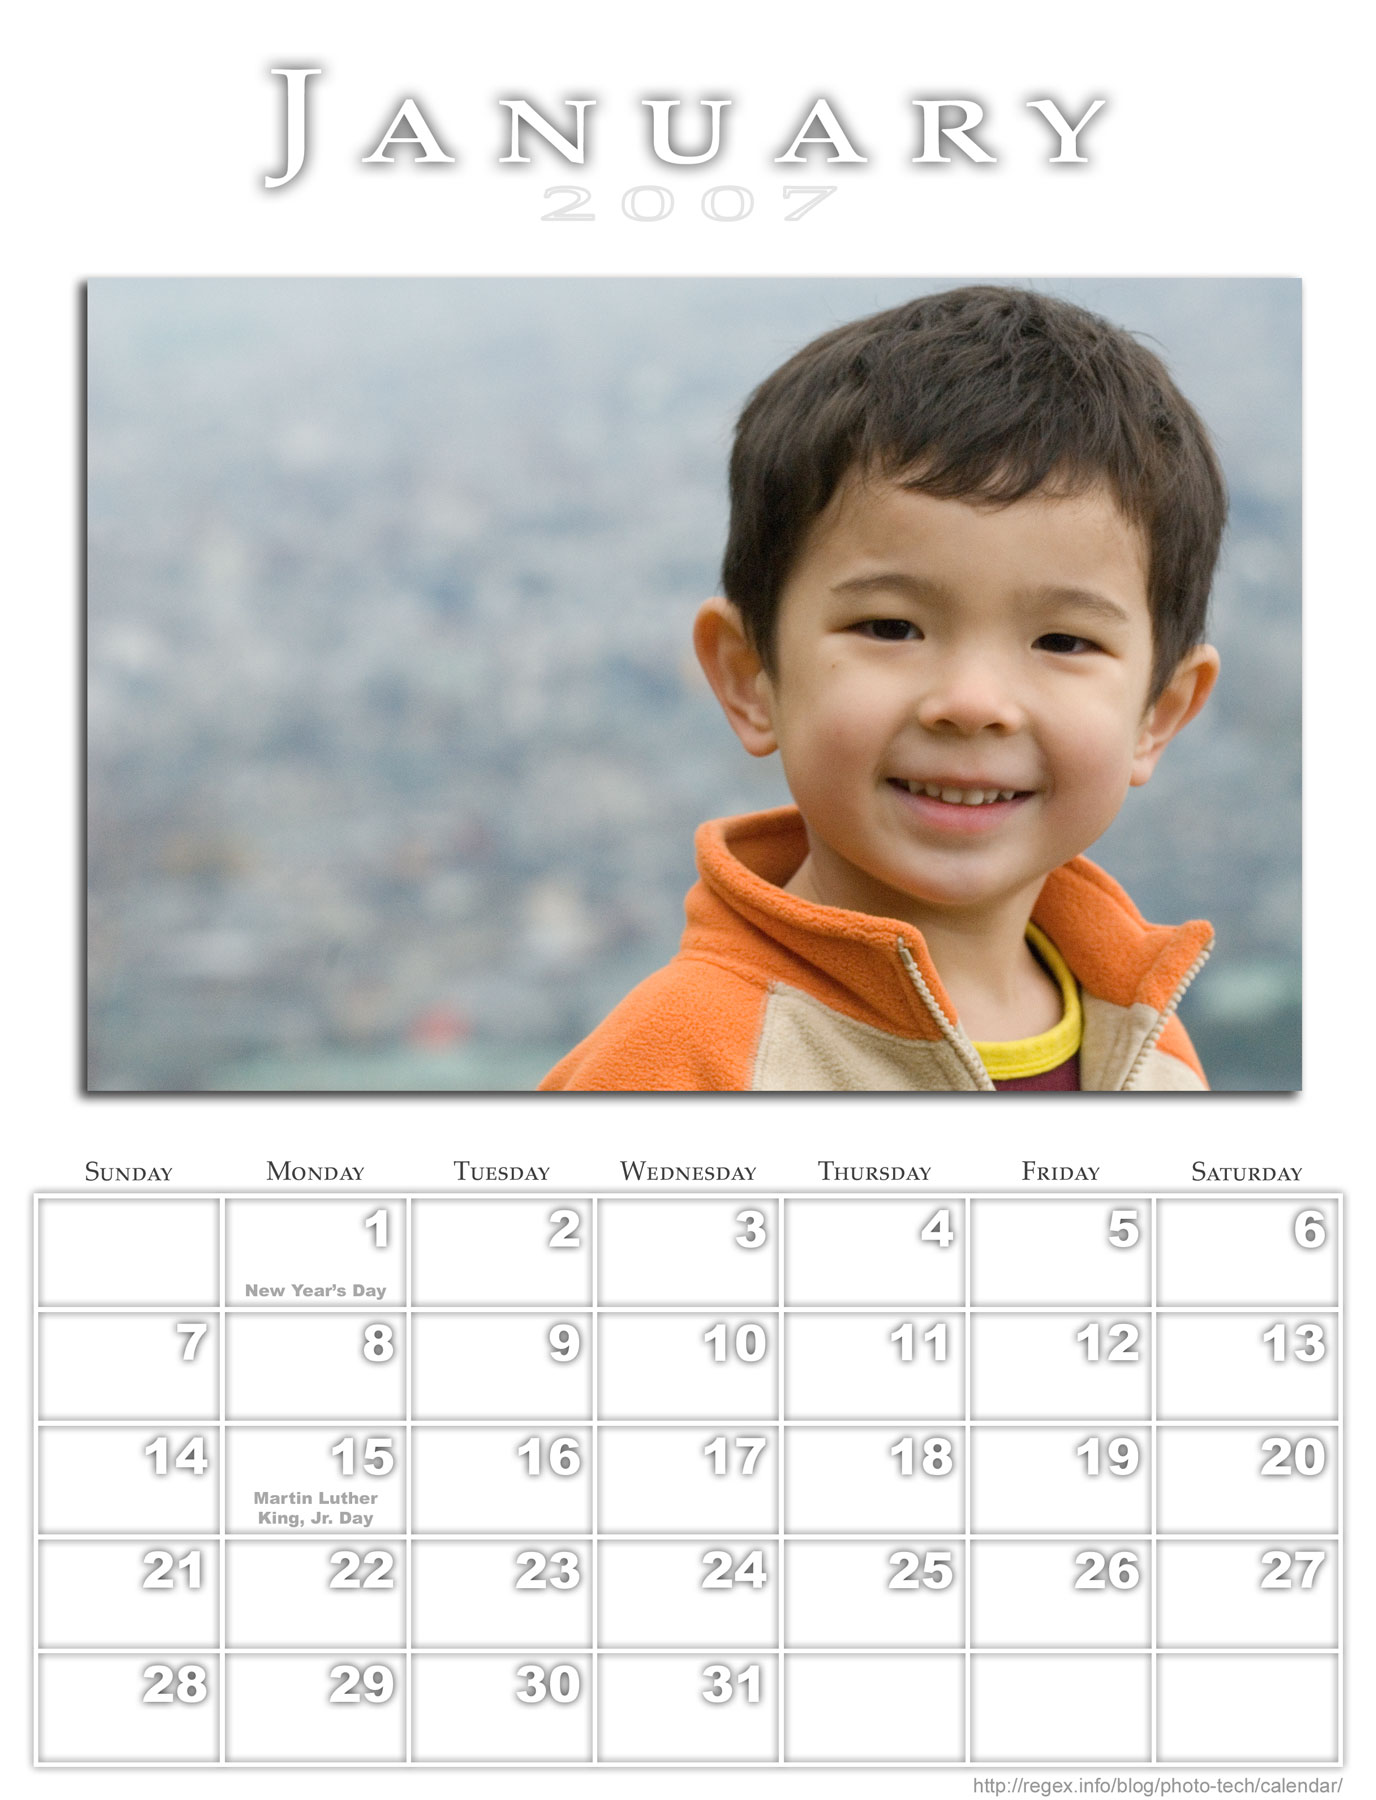 Photo-calendar createdwith Jeffrey's Photoshop Calendar-Building